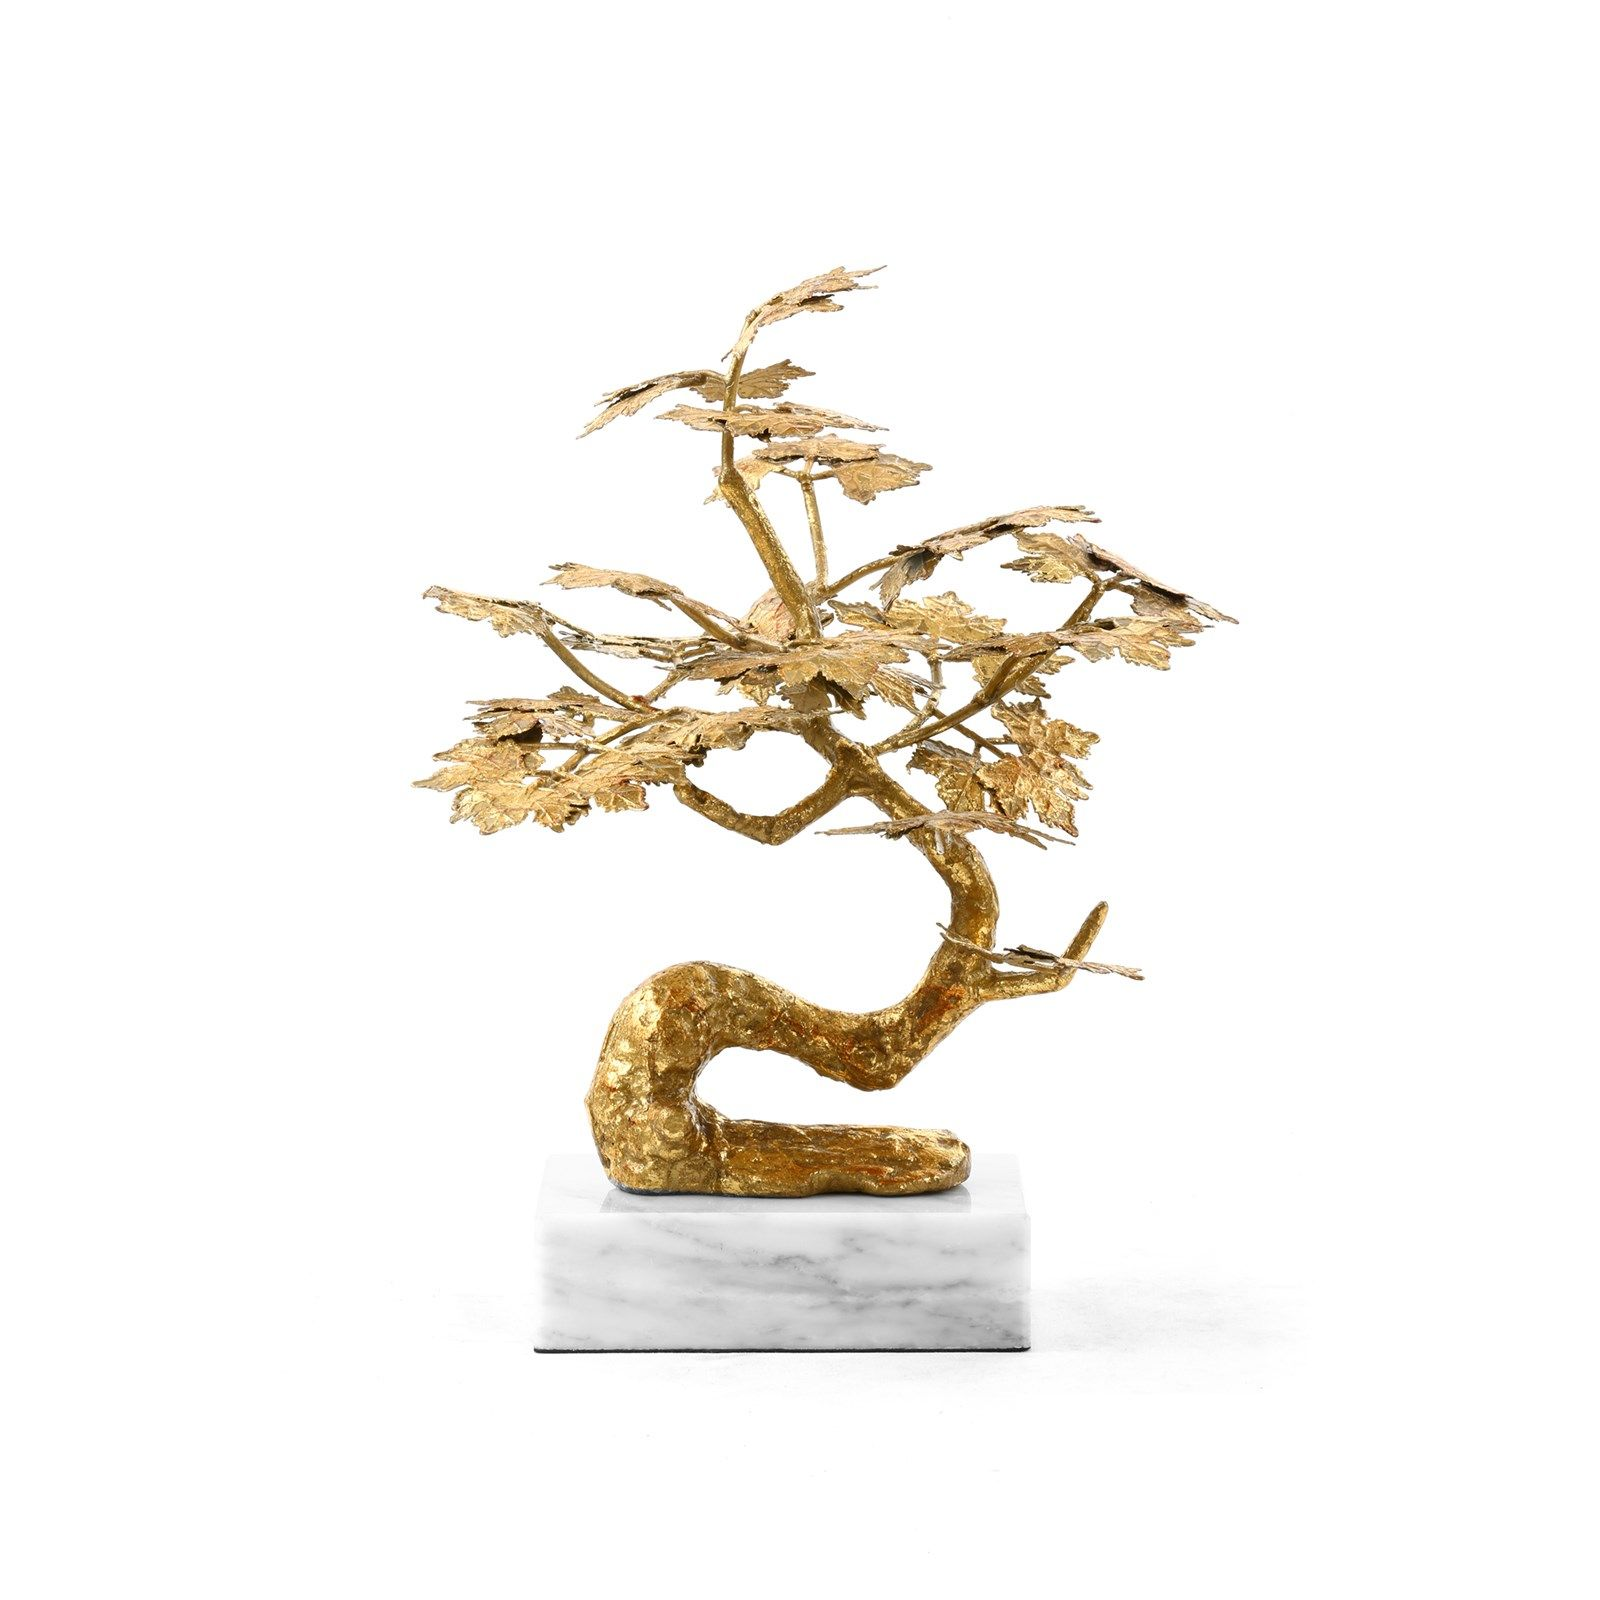 Gold Bonzai Sculpture